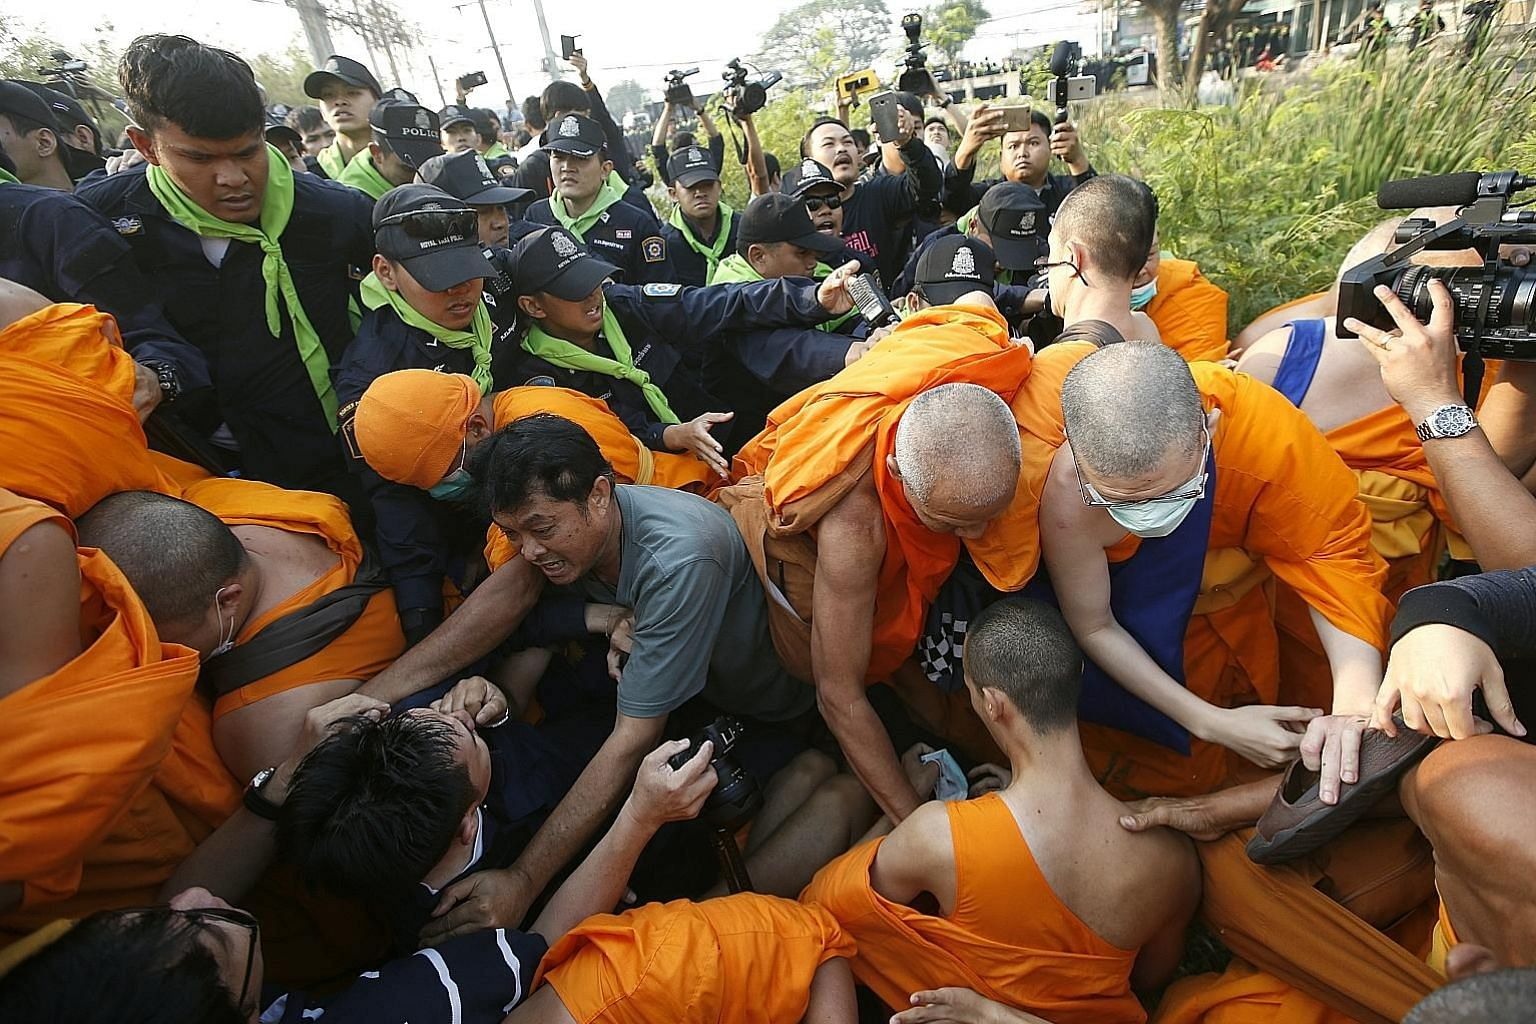 Monks of Dhammakaya Temple and their supporters clashing with police outside the temple yesterday. Fugitive honorary abbot Phra Dhammachayo is believed to be holed up inside the compound.